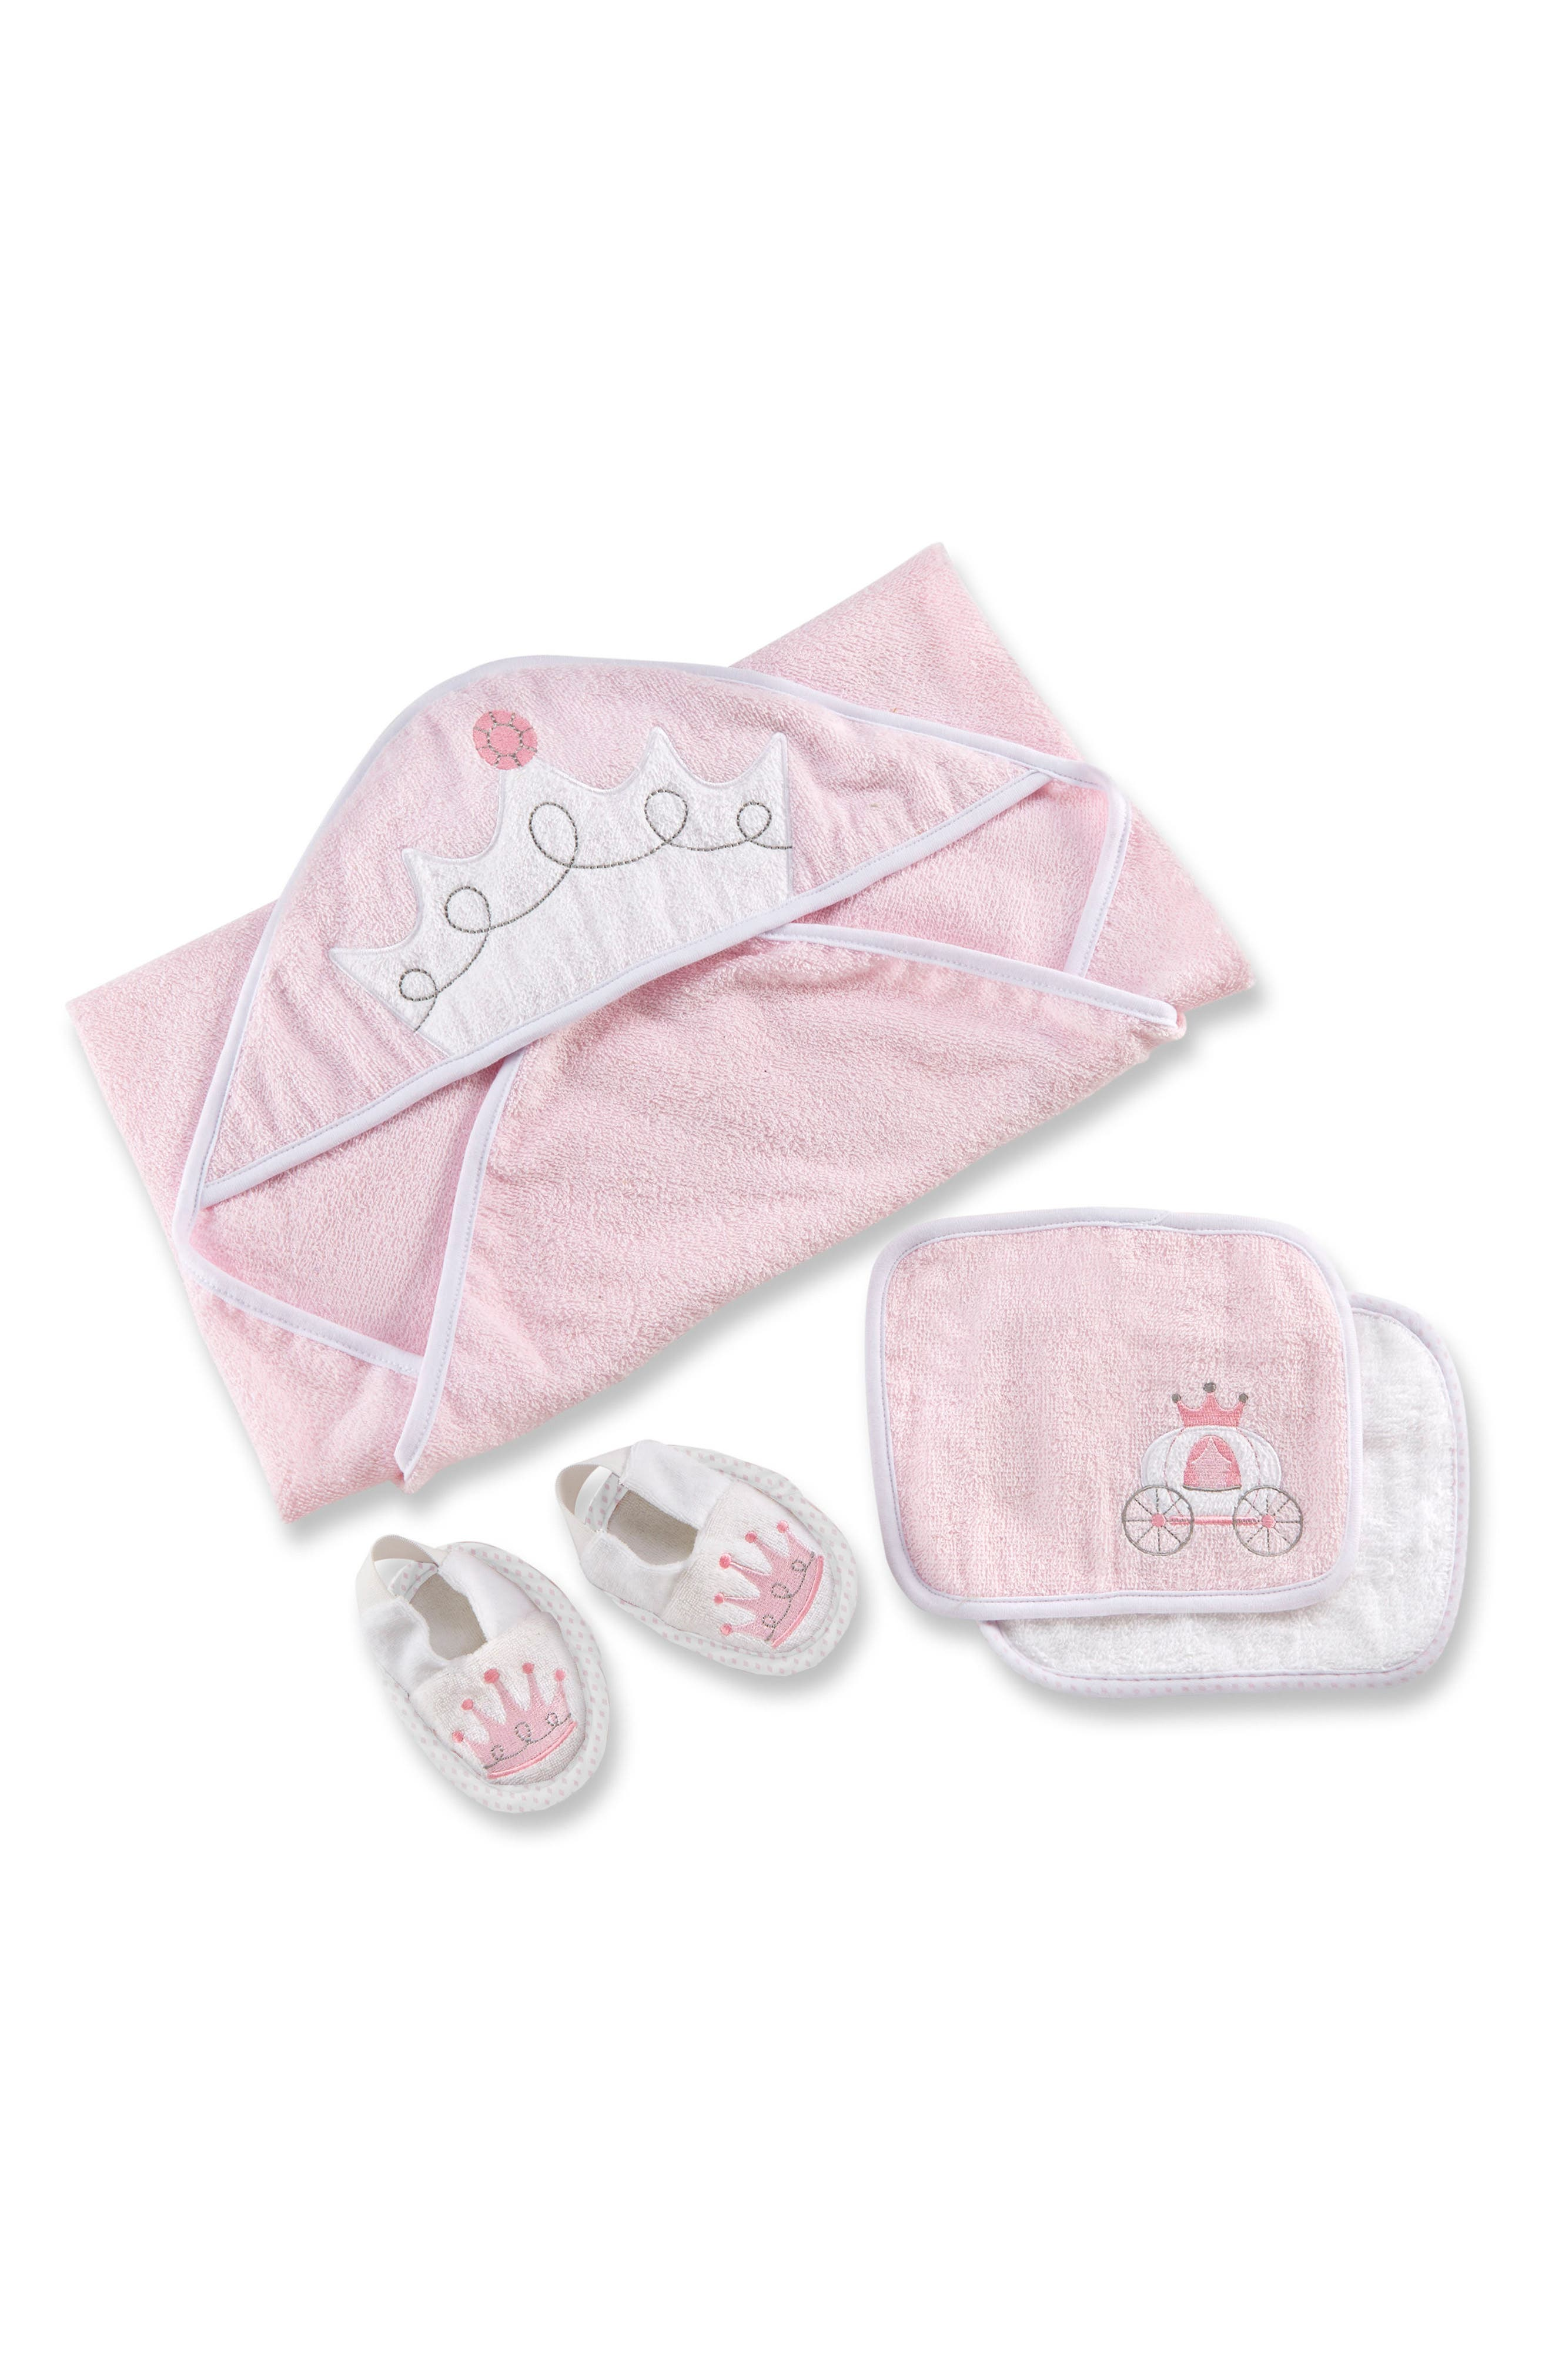 Main Image - Baby Aspen Little Princess 4-Piece Bath Set (Baby Girls)